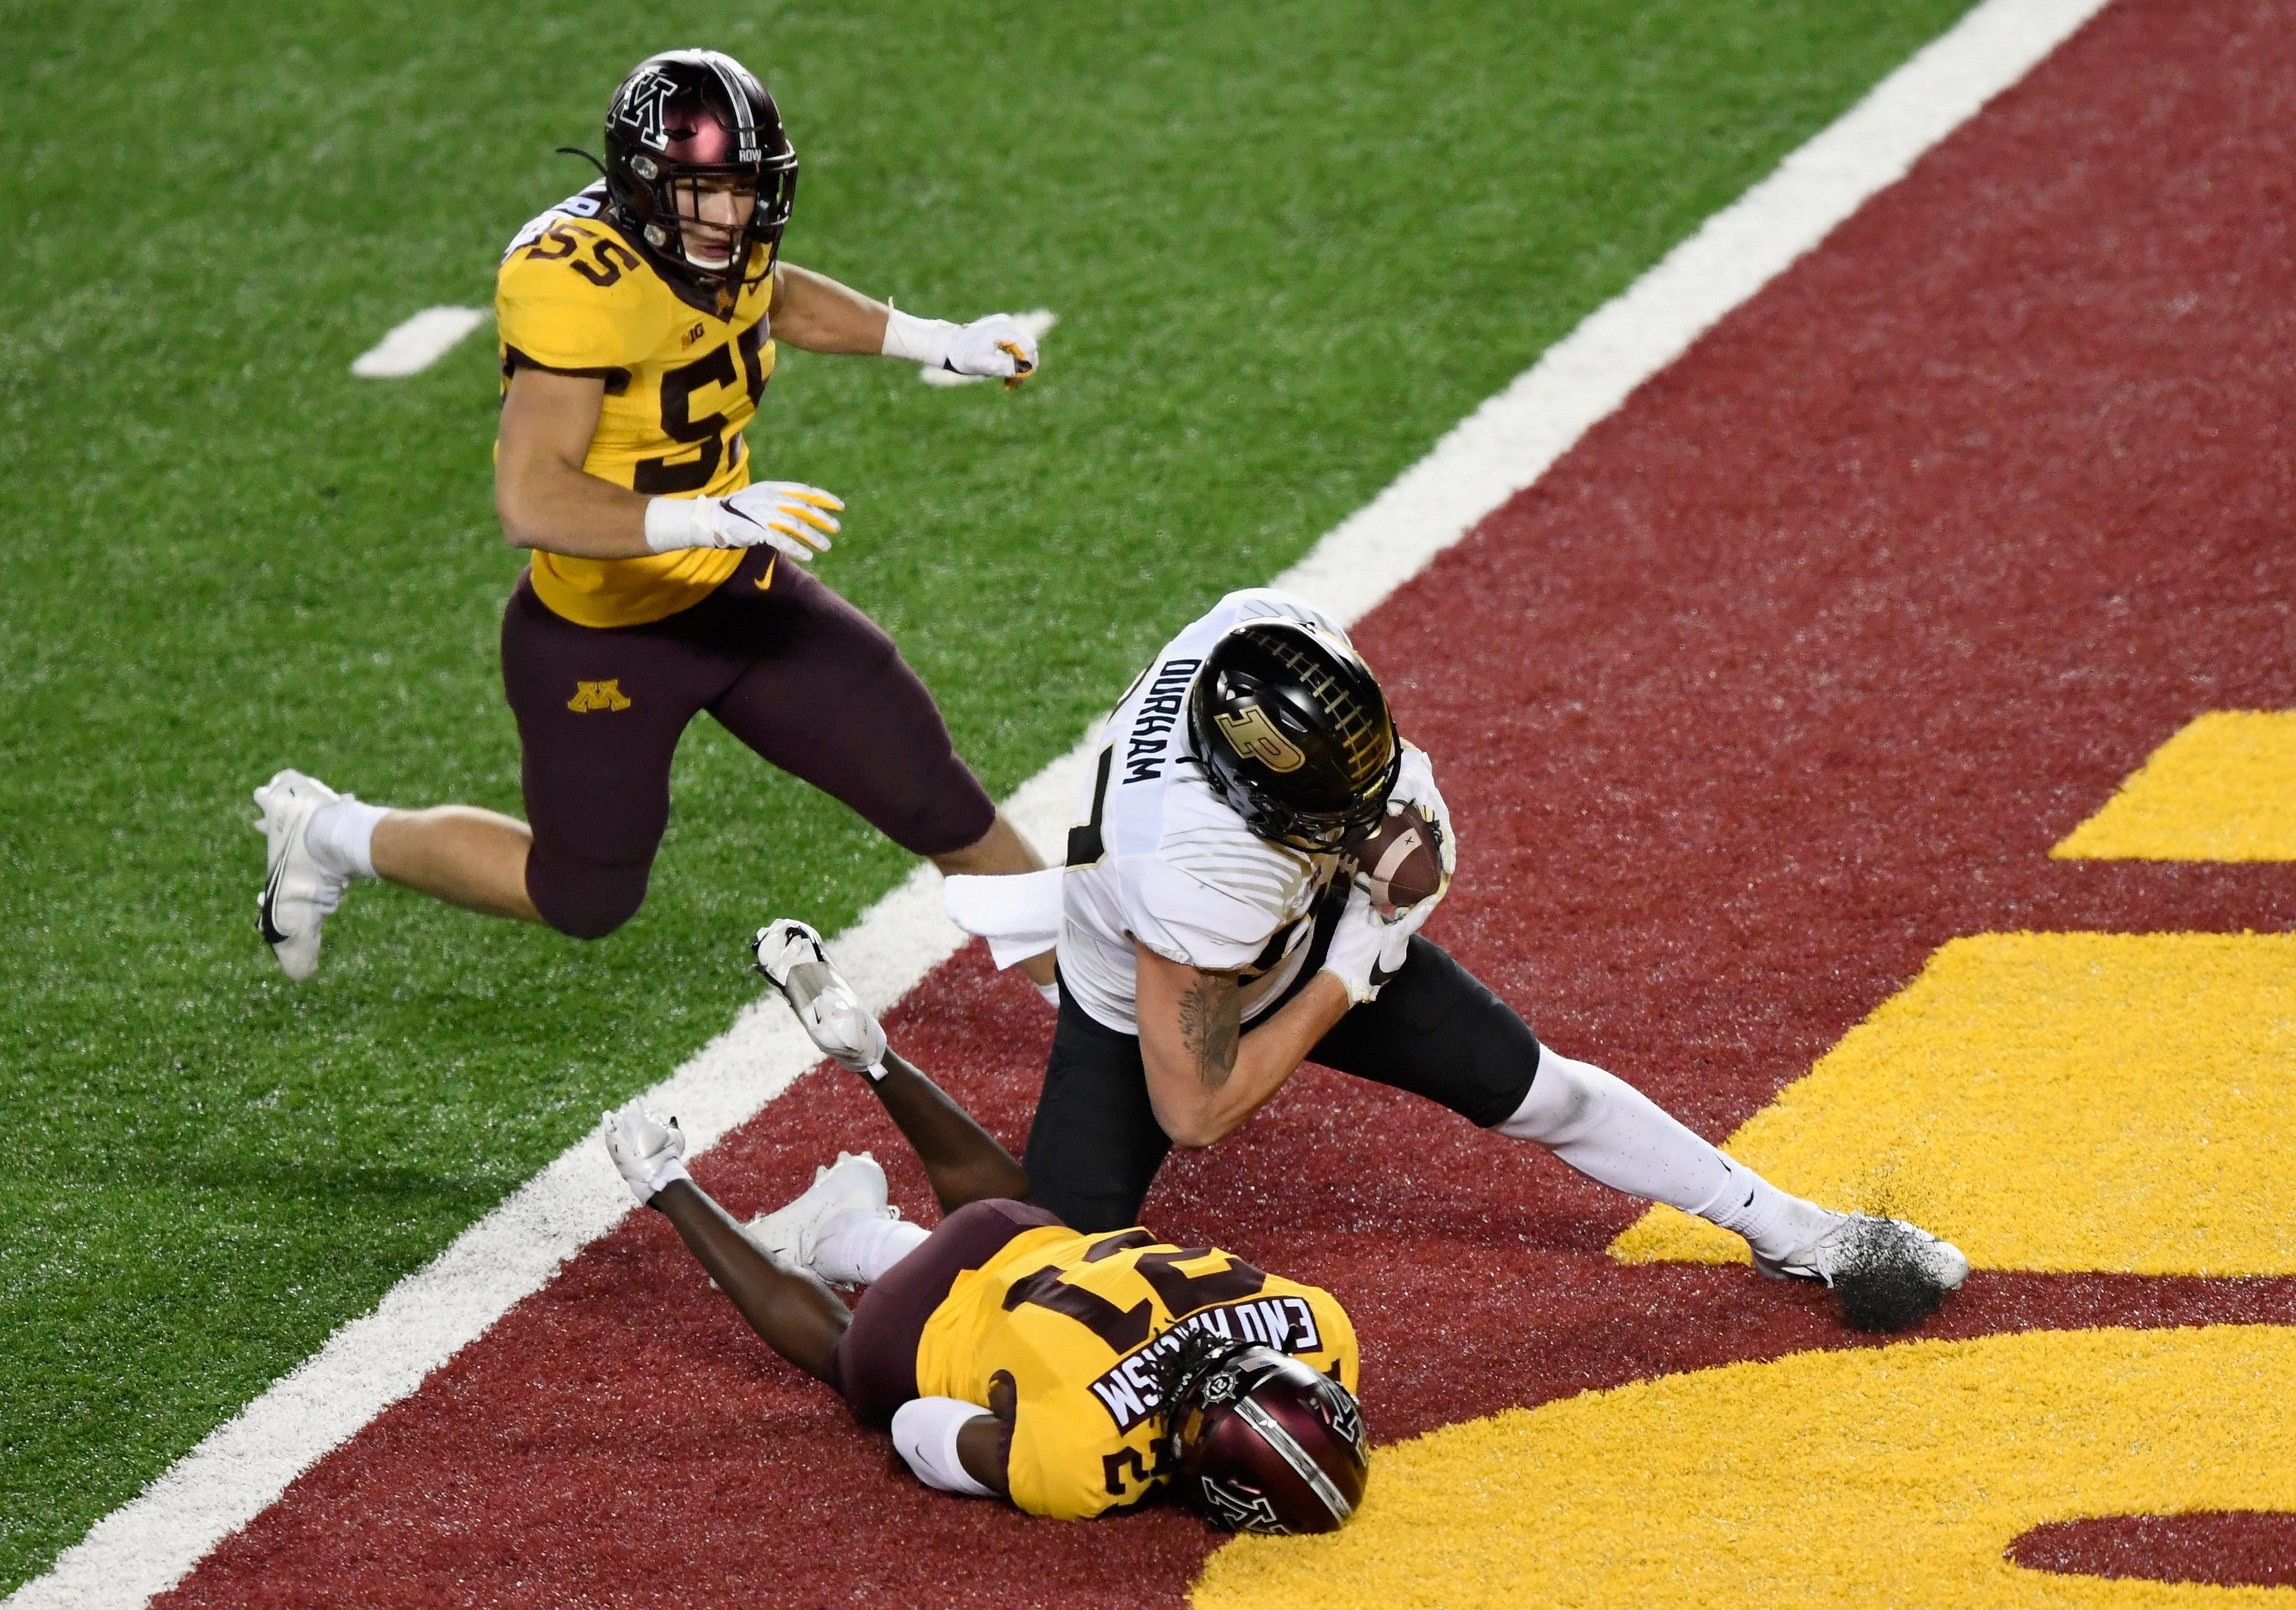 Head-scratching pass interference call costs Purdue in loss to Minnesota